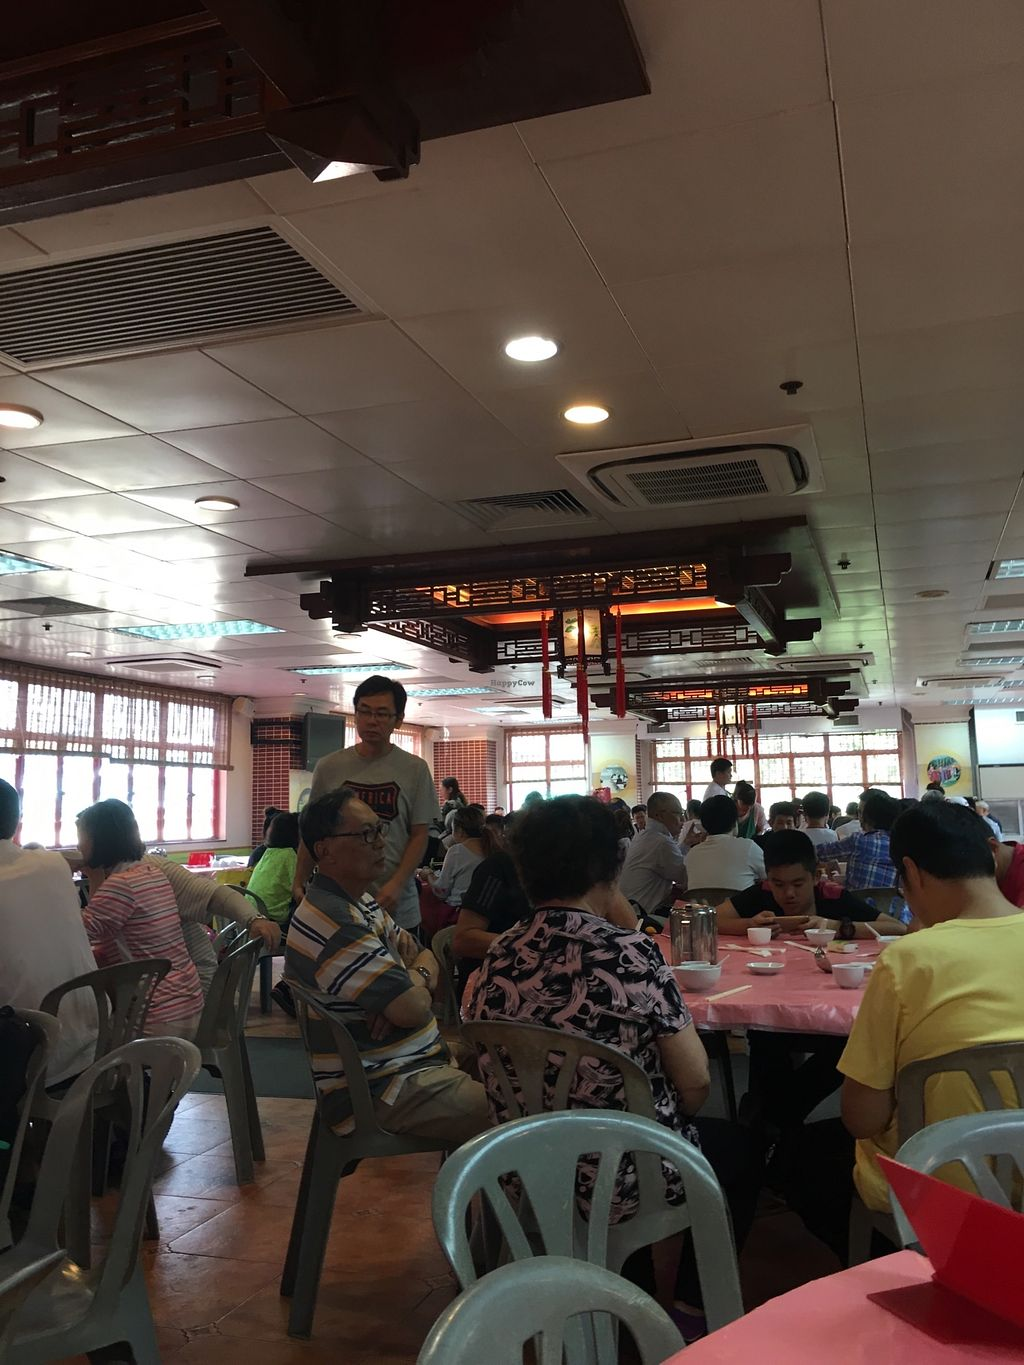 """Photo of Fung Ying Seen Koon Vegetarian Kitchen  by <a href=""""/members/profile/BobbiChina"""">BobbiChina</a> <br/>Inside the restaurant  <br/> April 5, 2018  - <a href='/contact/abuse/image/51563/381057'>Report</a>"""